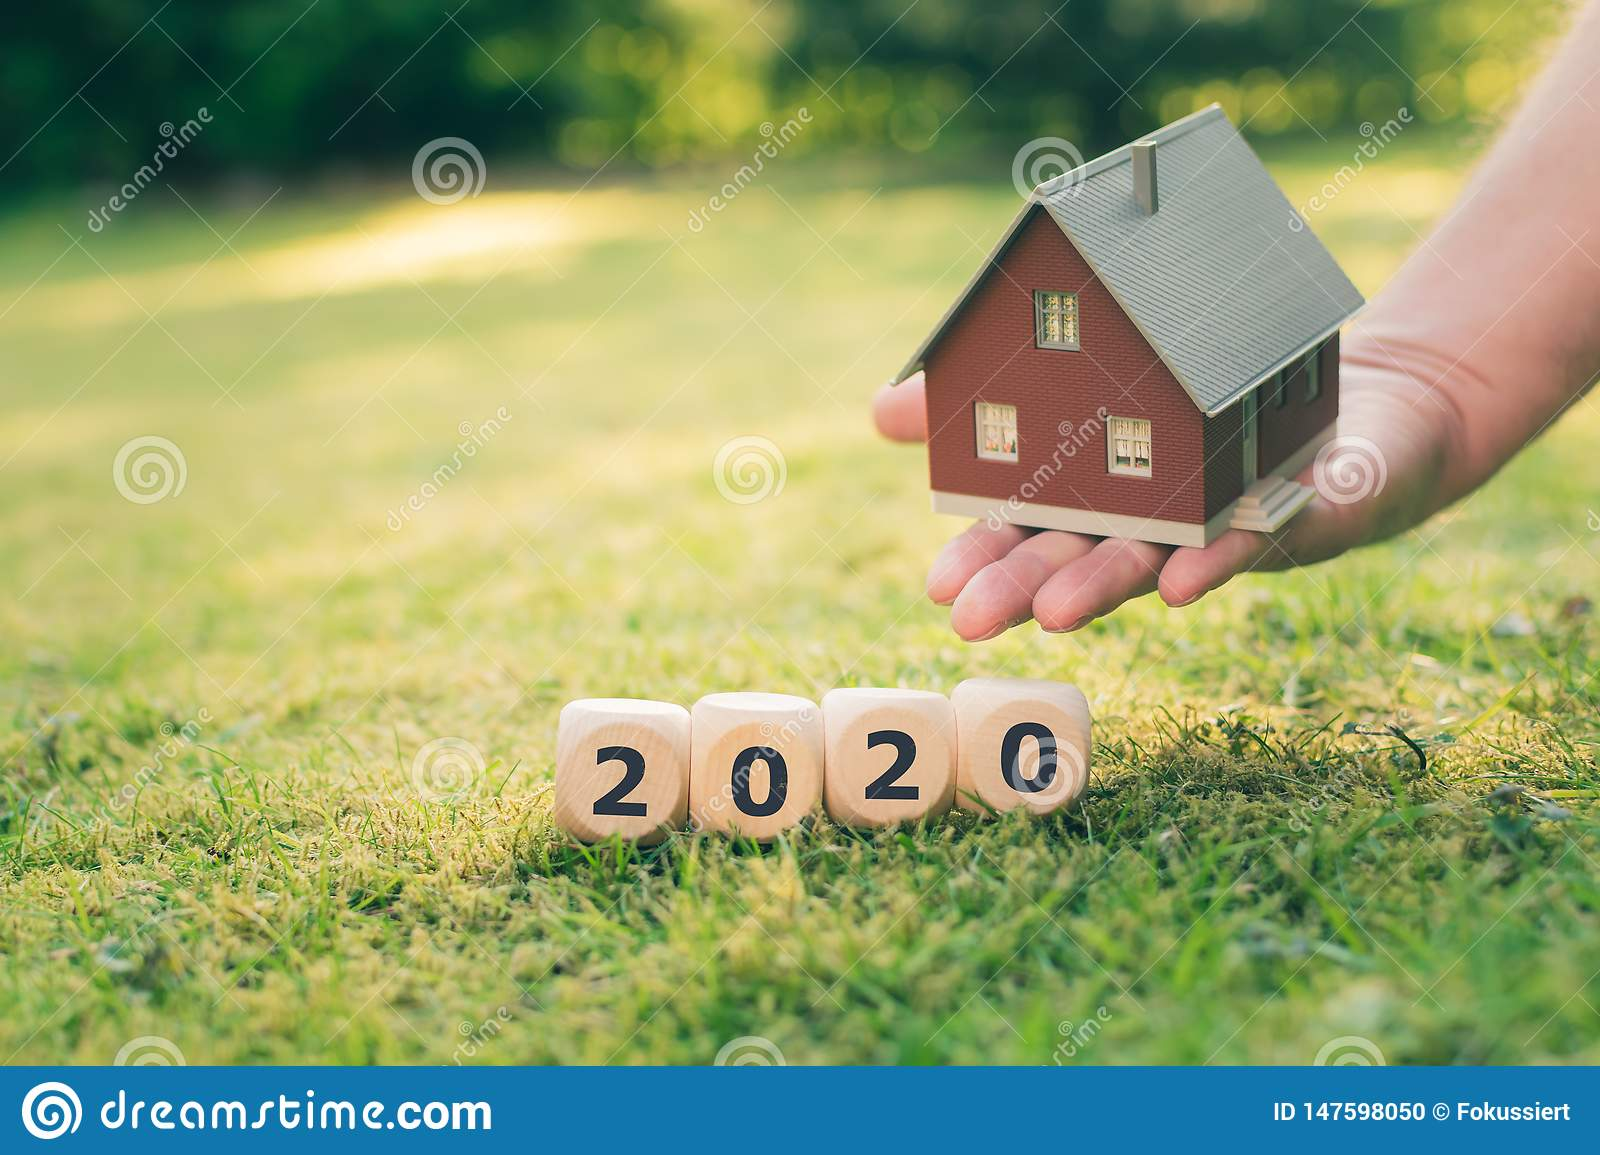 Concept for buying a house in the year 2020.